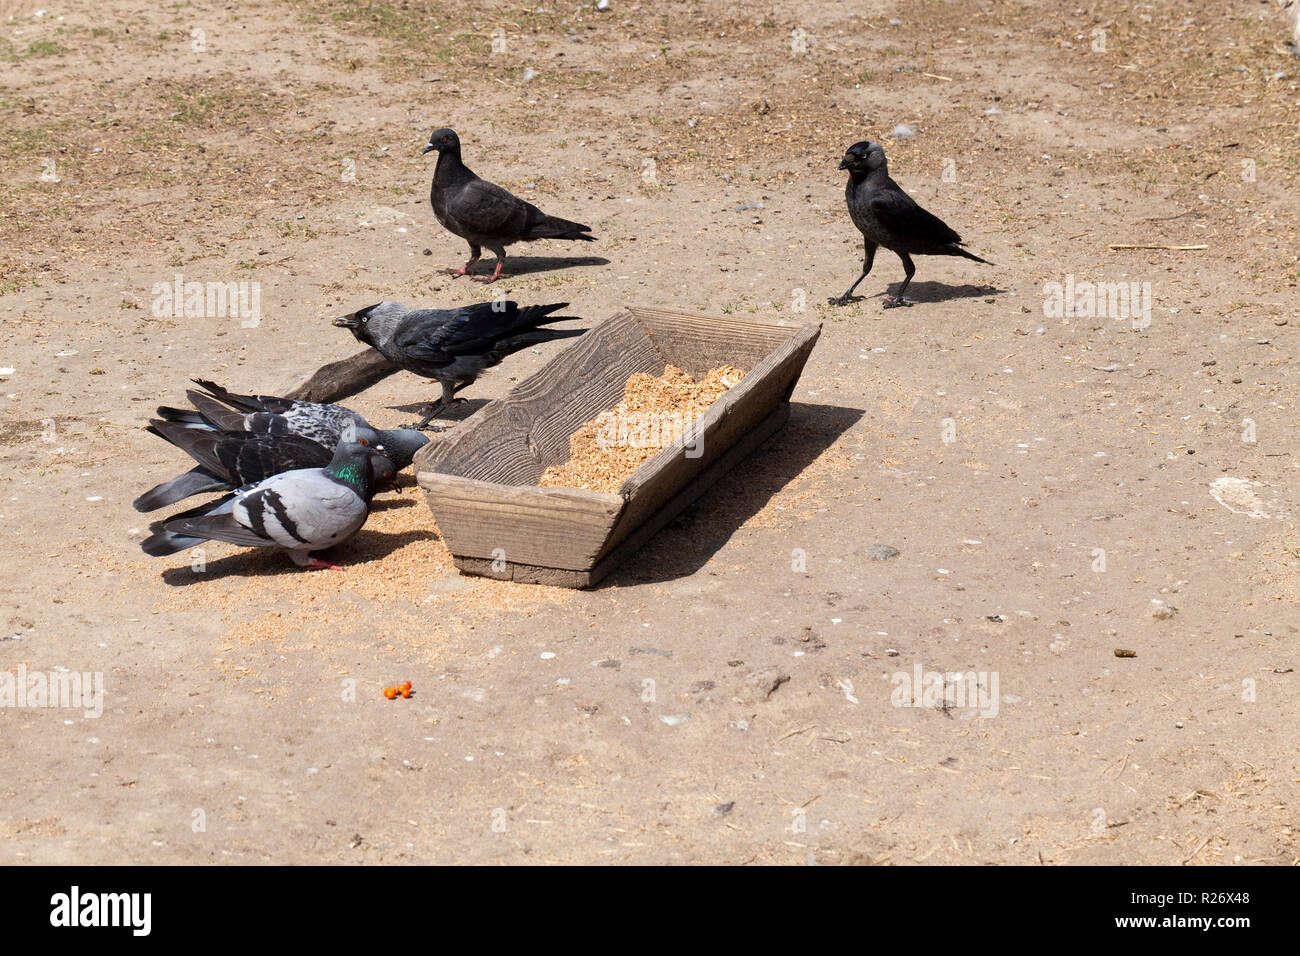 Old Wooden Trough With Grain For Feeding Pigeons Ravens And Other